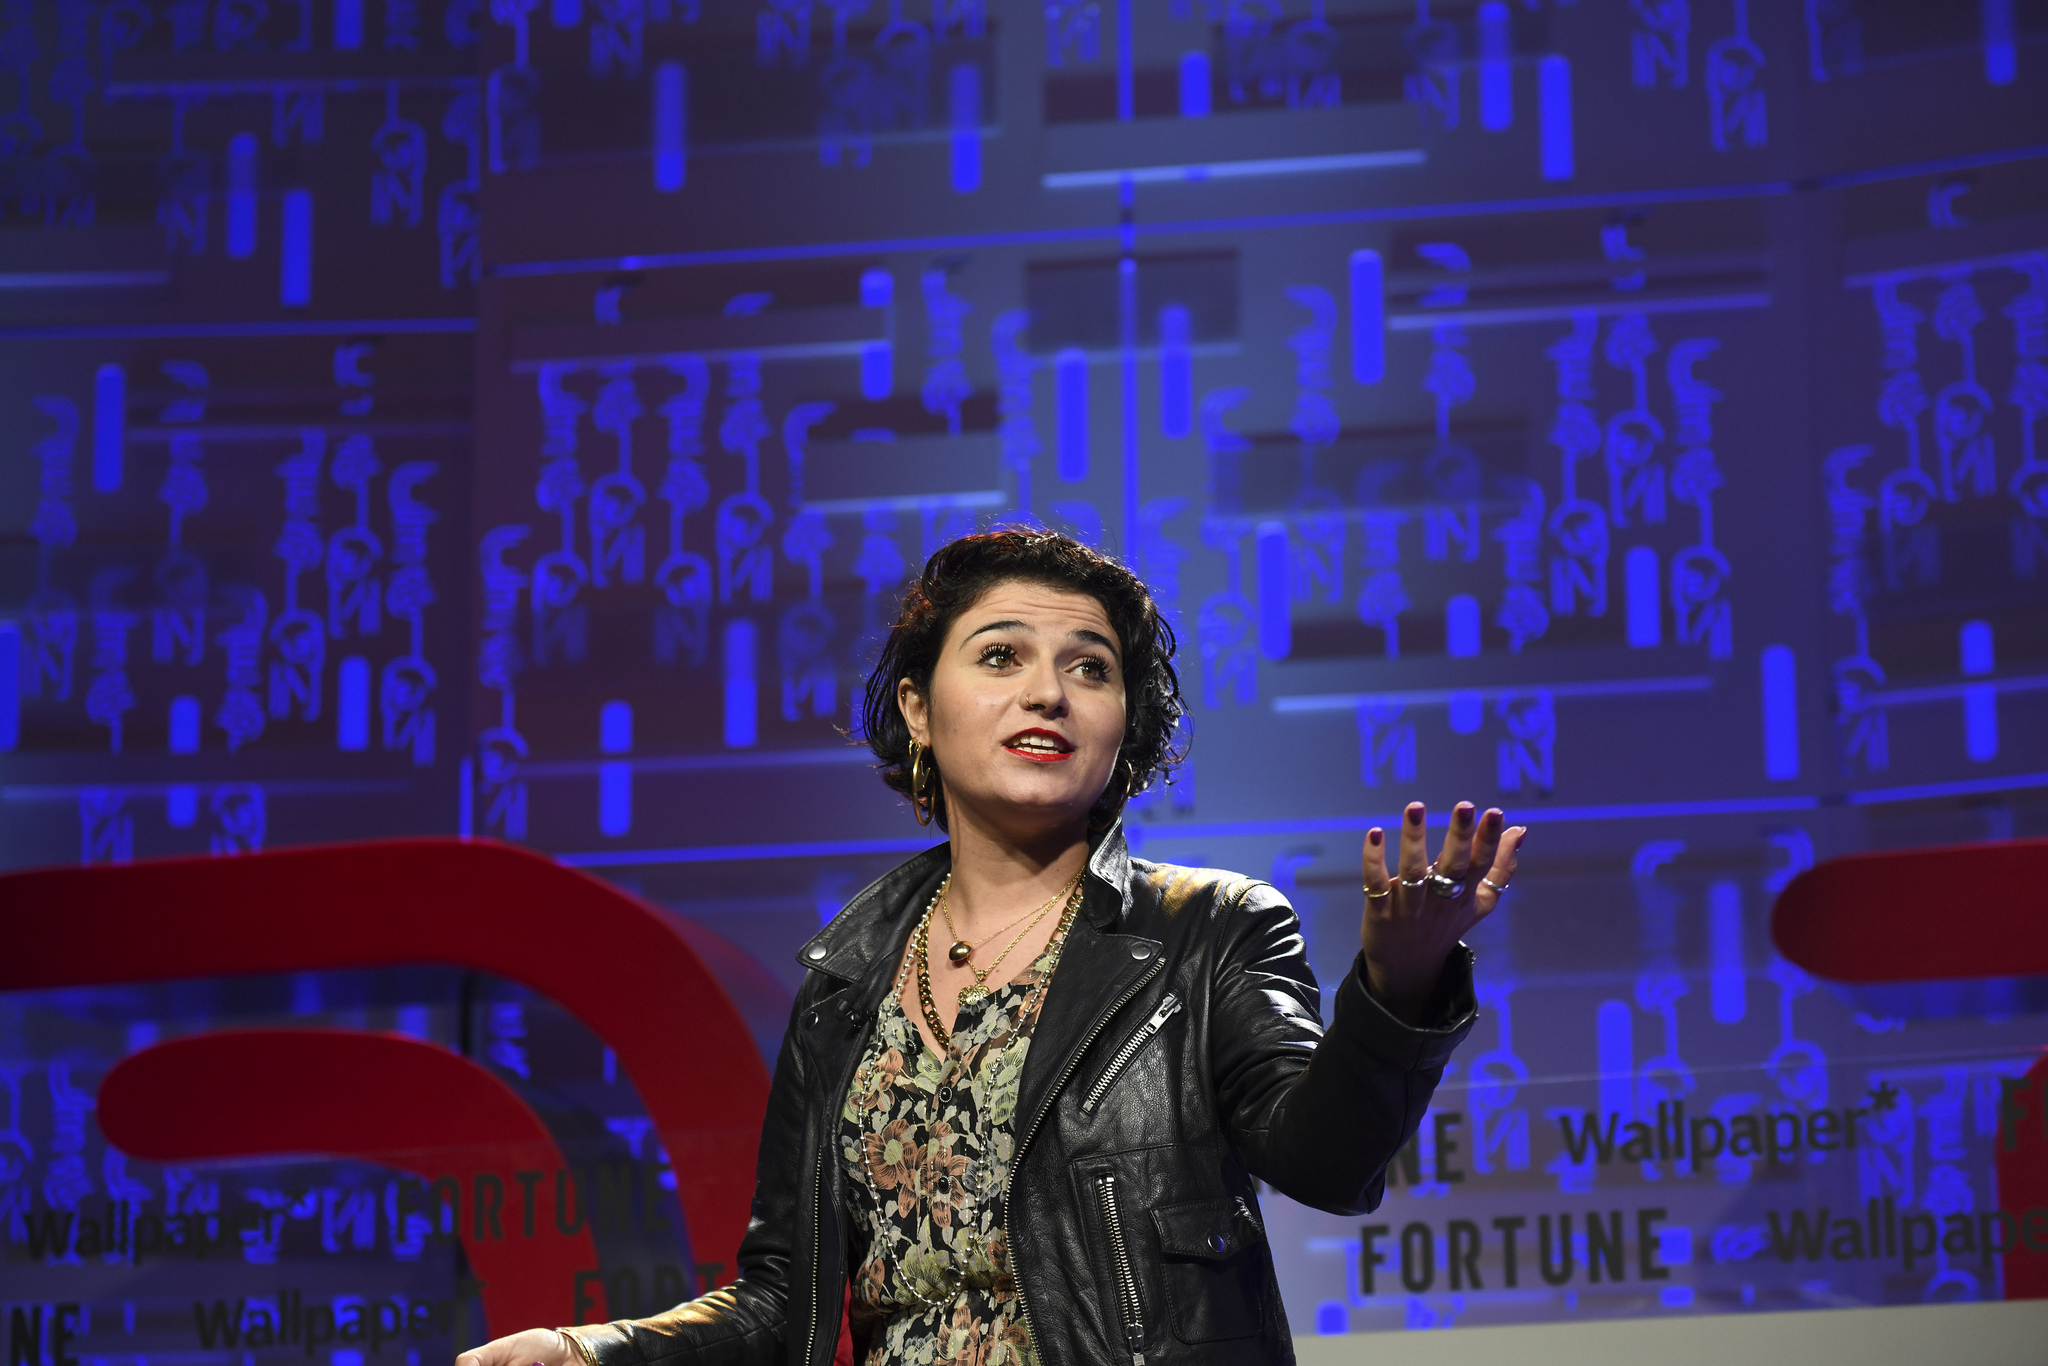 Nelly Ben Hayoun, director of Nelly Ben Hayoun Studios, speaking at the 2019 Fortune Brainstorm Design conference in Singapore.